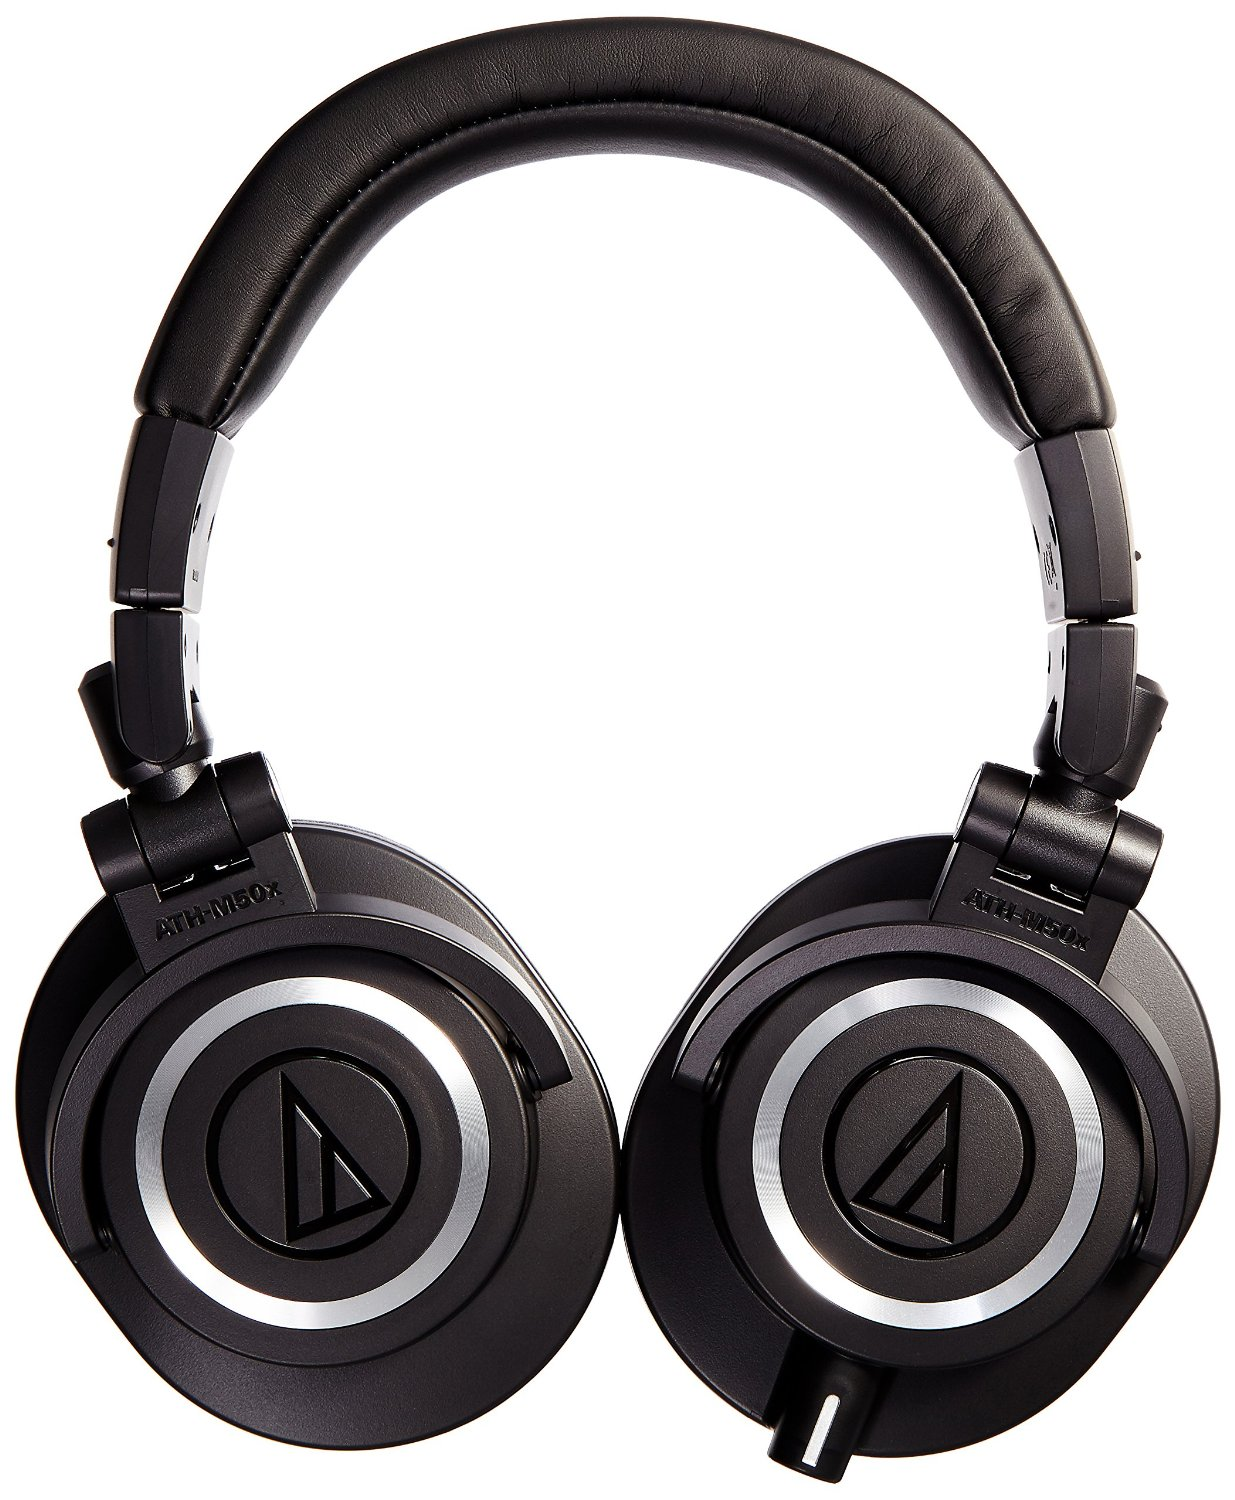 Headphones audio technica m50x - Sony MDR-ZX770BT (Black) Overview